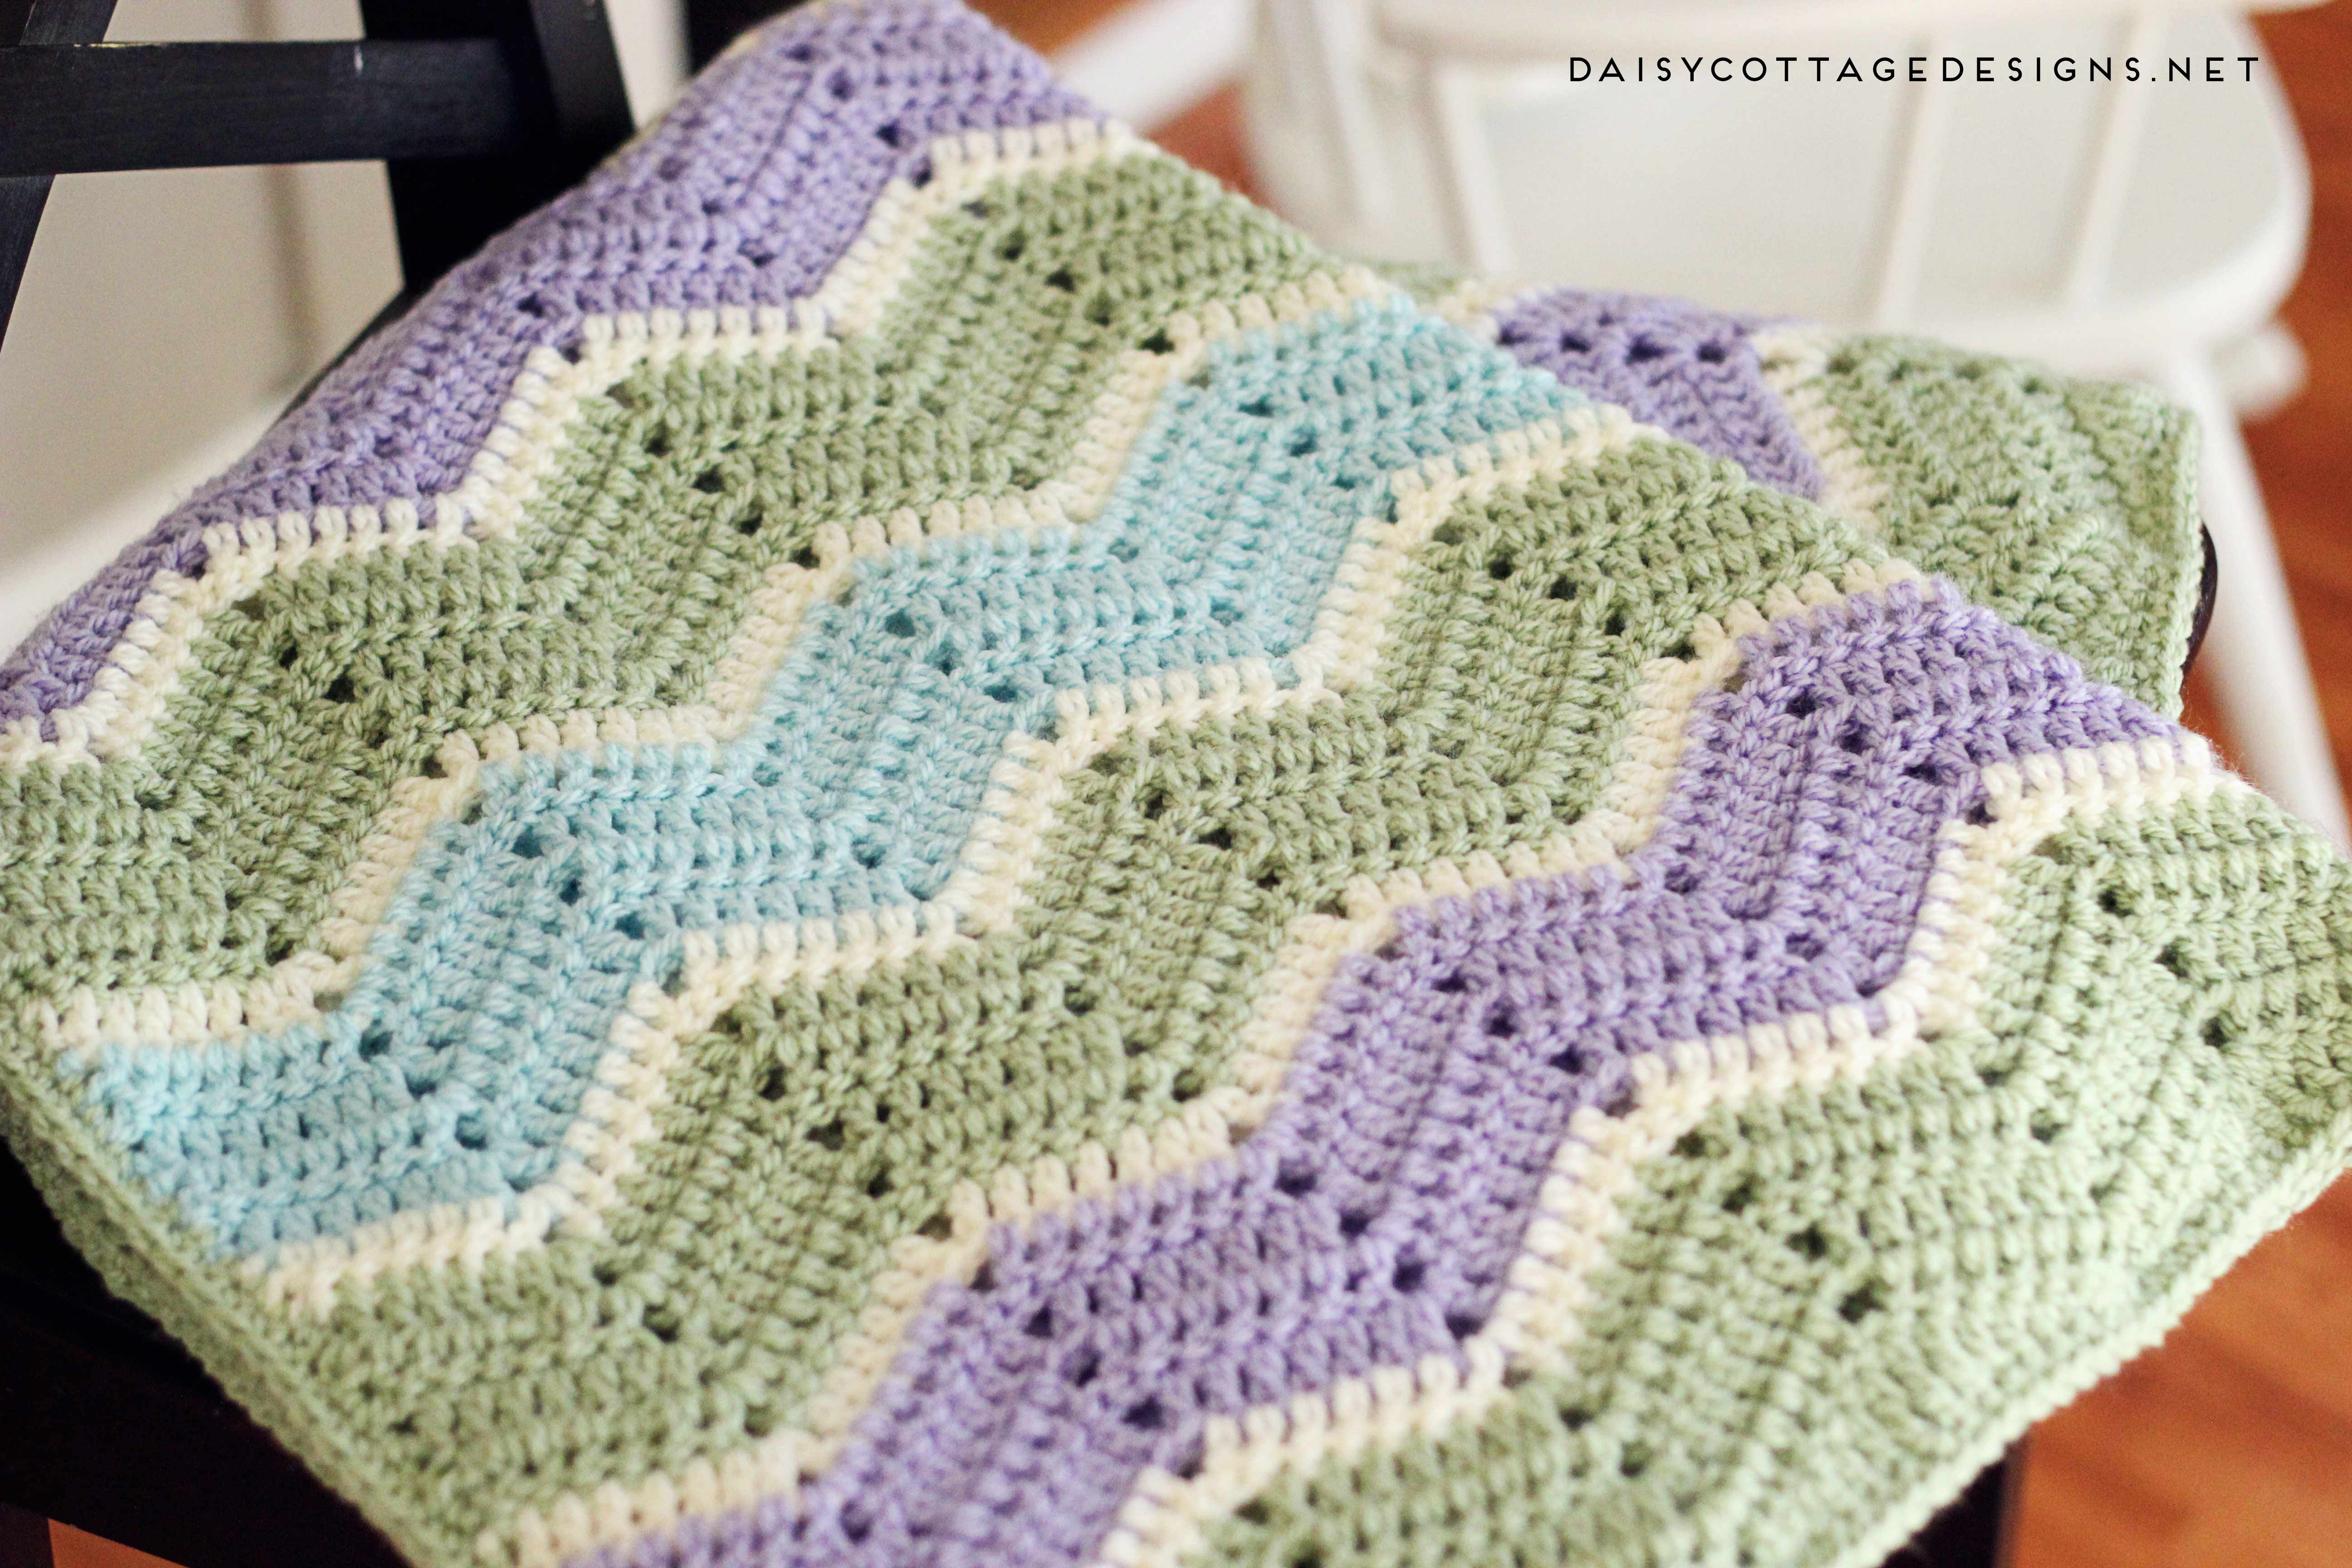 crochet designs use this chevron blanket crochet pattern from daisy cottage designs to  create siyllxc